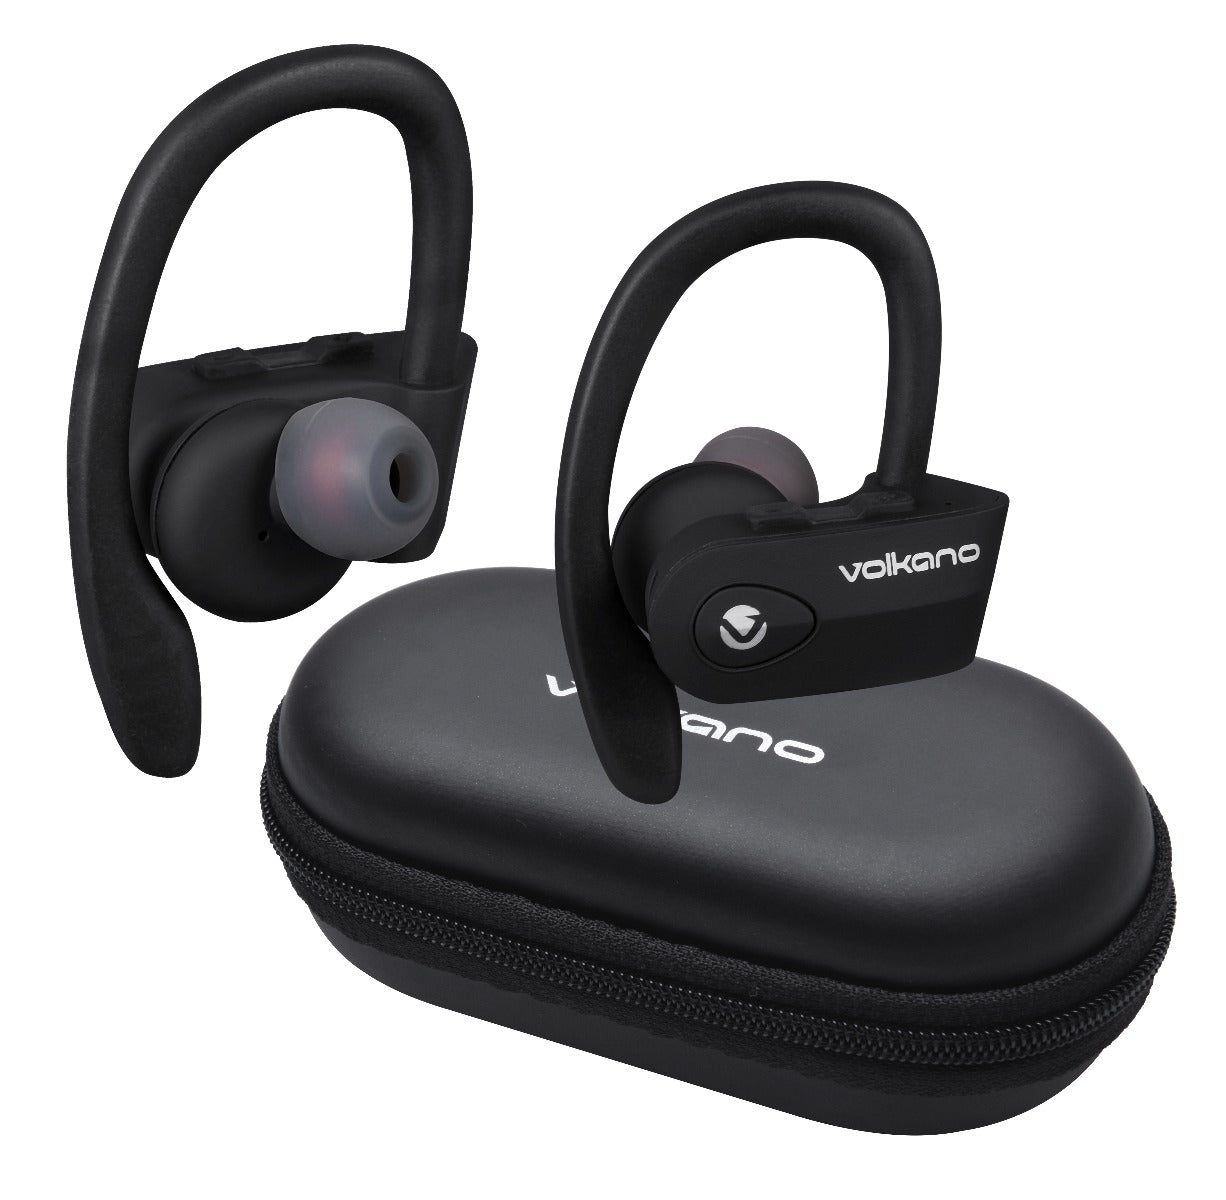 Volkano Sprint Series TWS True Wireless Bluetooth Sport Earbuds With Microphone & Call Function - Black - VOLK-VK-1112/BLK